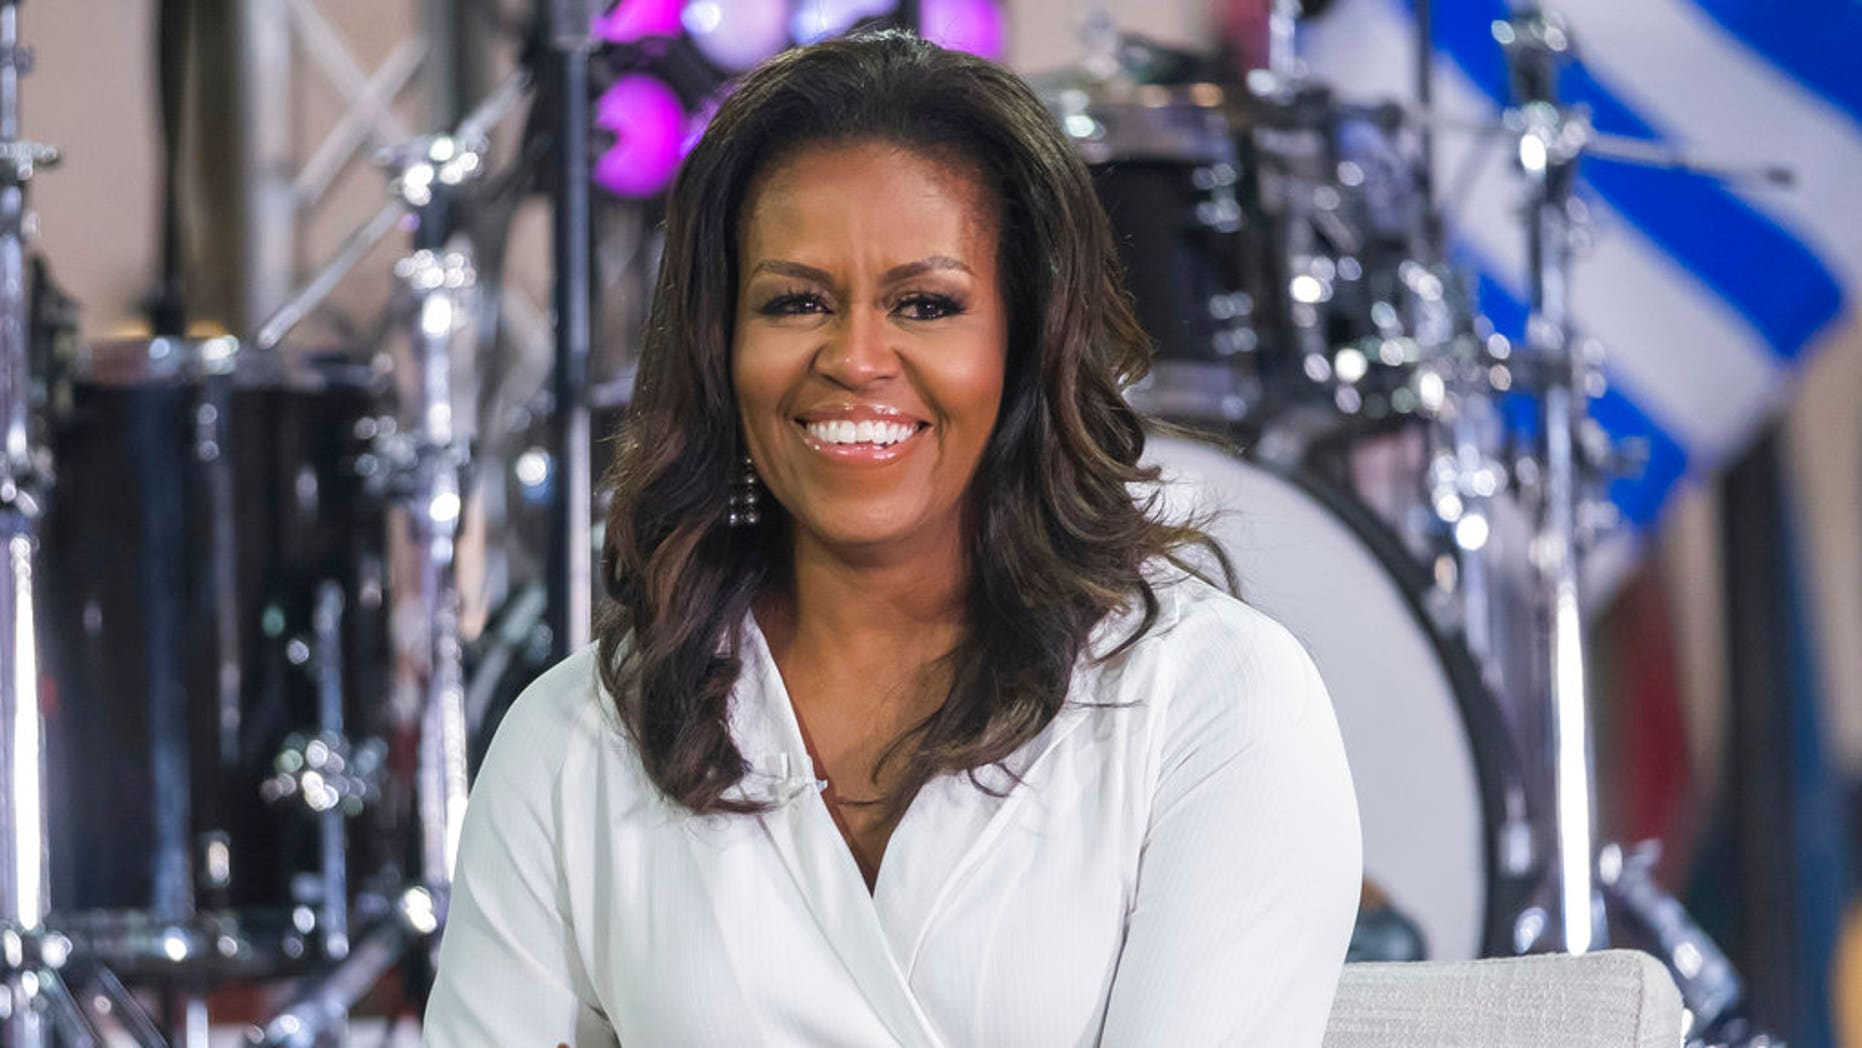 In new book, Michelle Obama reveals miscarriage, used IVF to conceive daughters